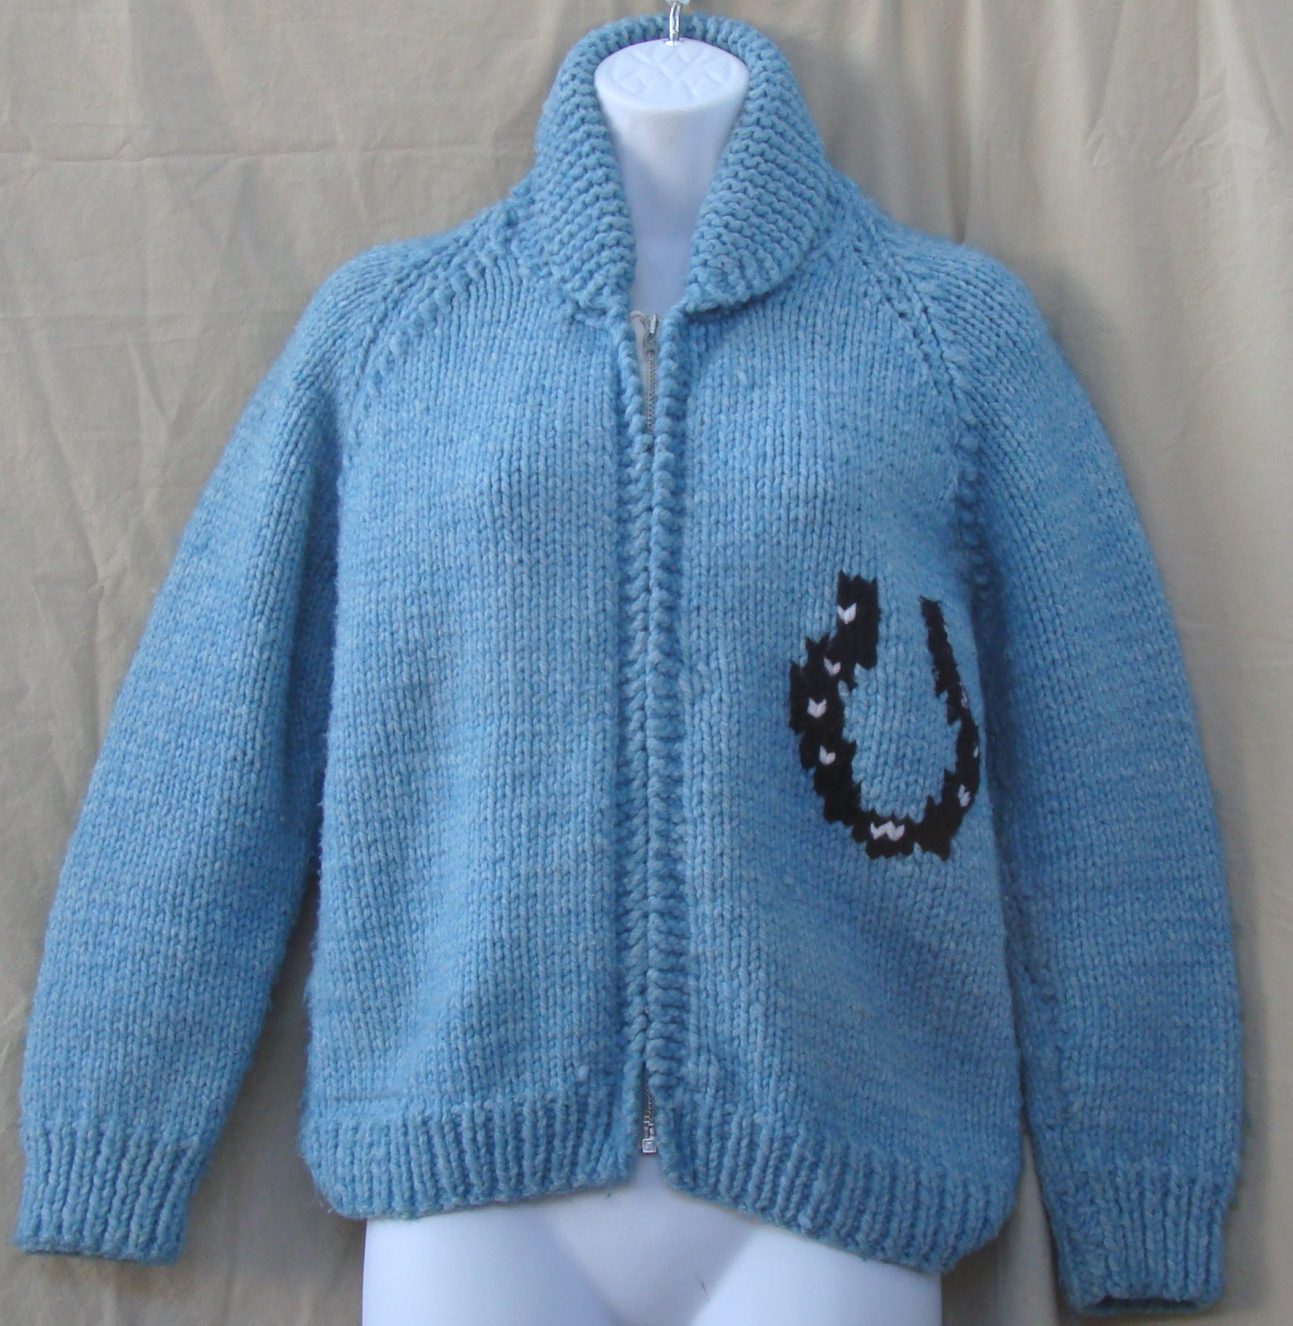 Vintage Bulletin, the Vintage Clothing blog: Bulky Knit ...